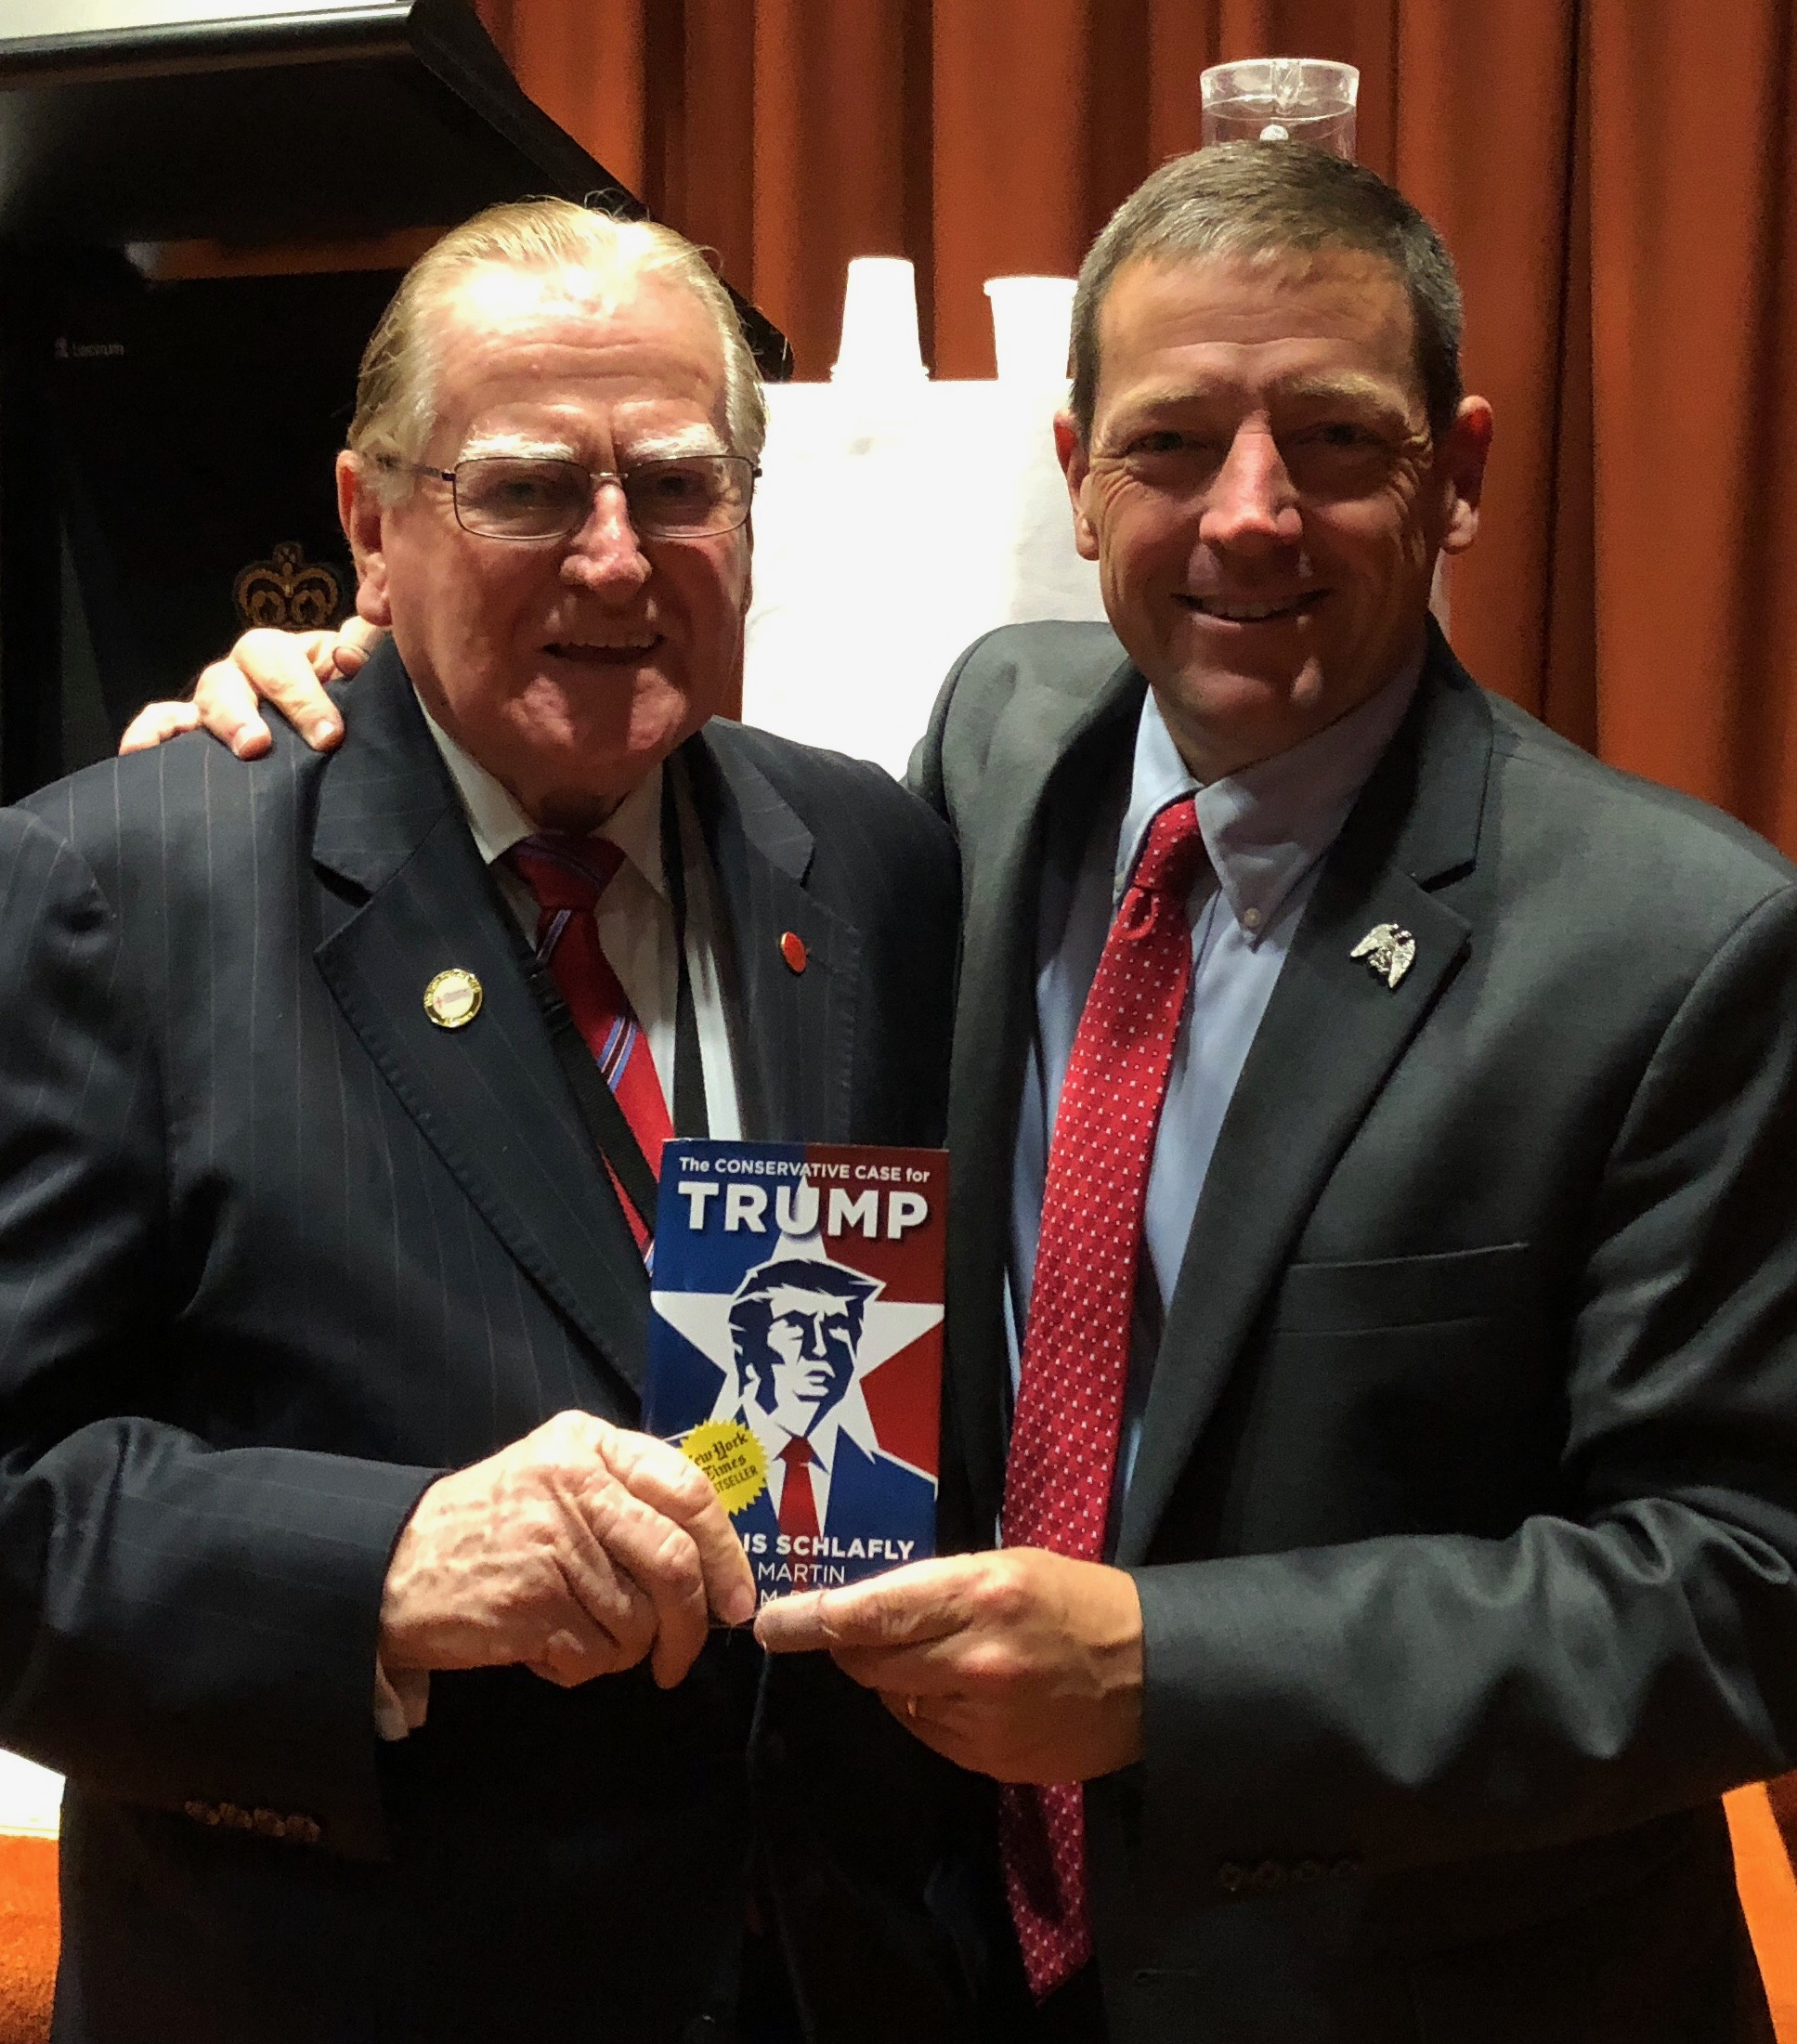 """Ed Martin presents """"The Conservative Case for Trump"""" book to Rev. Fred Nile 2017"""